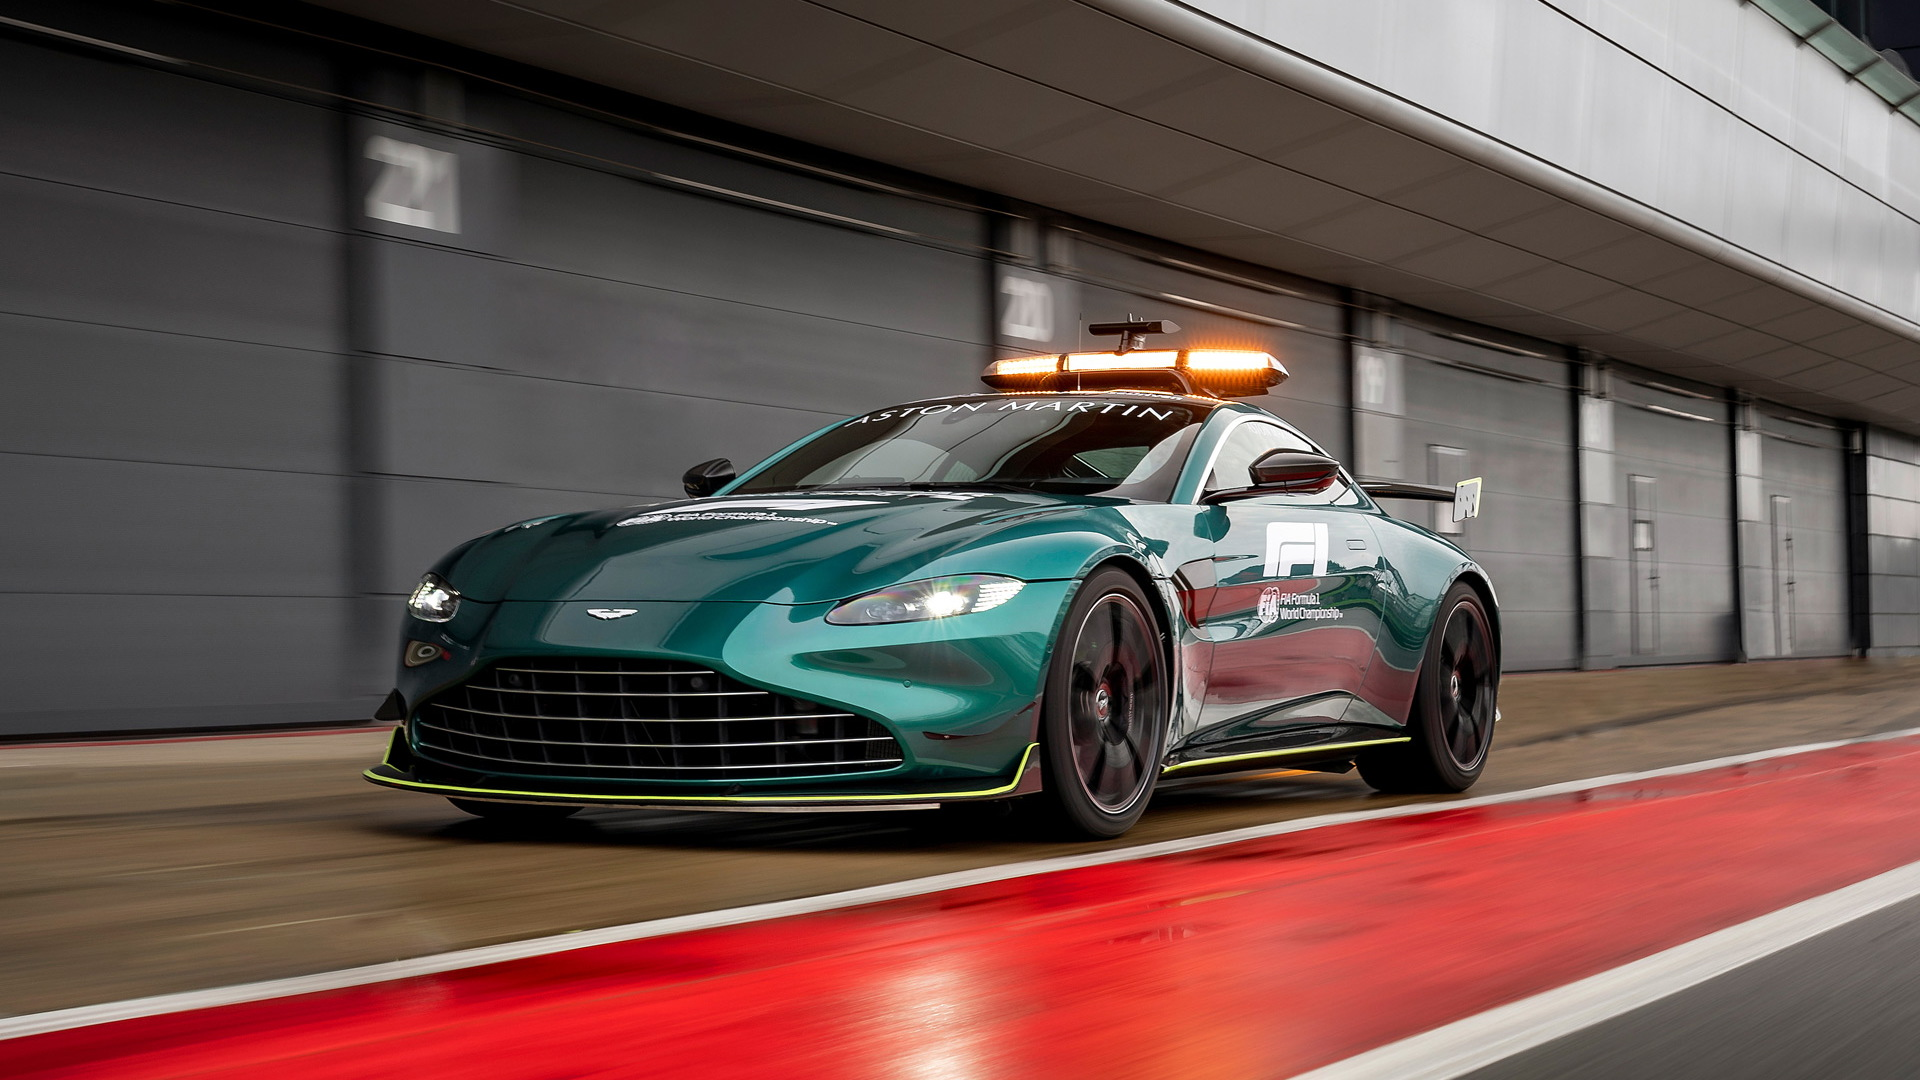 2021 Aston Martin Vantage Formula One Official Safety Car